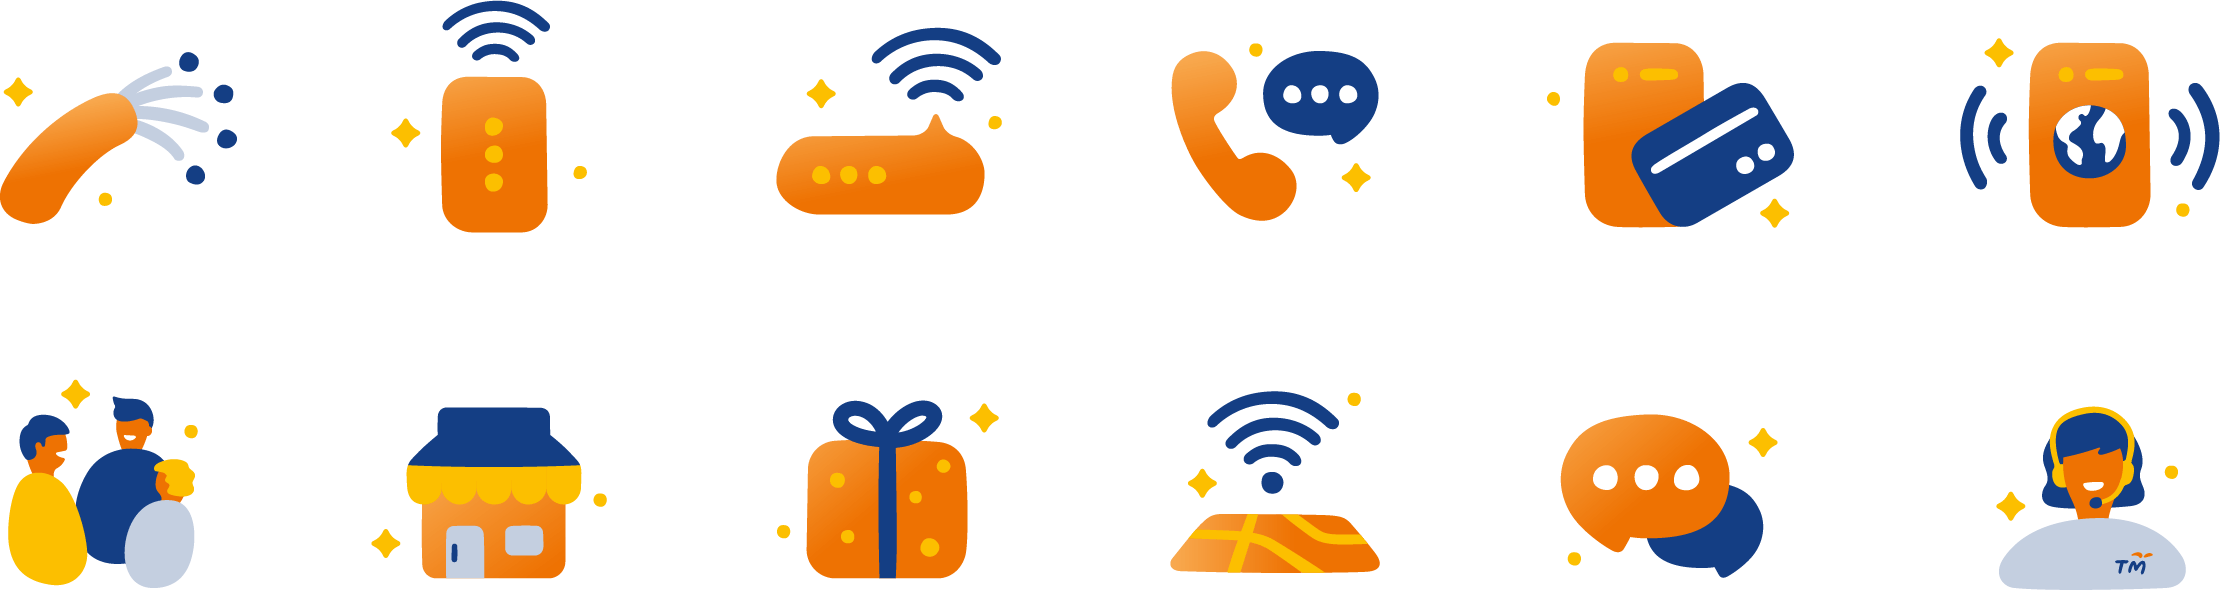 unifi-icons